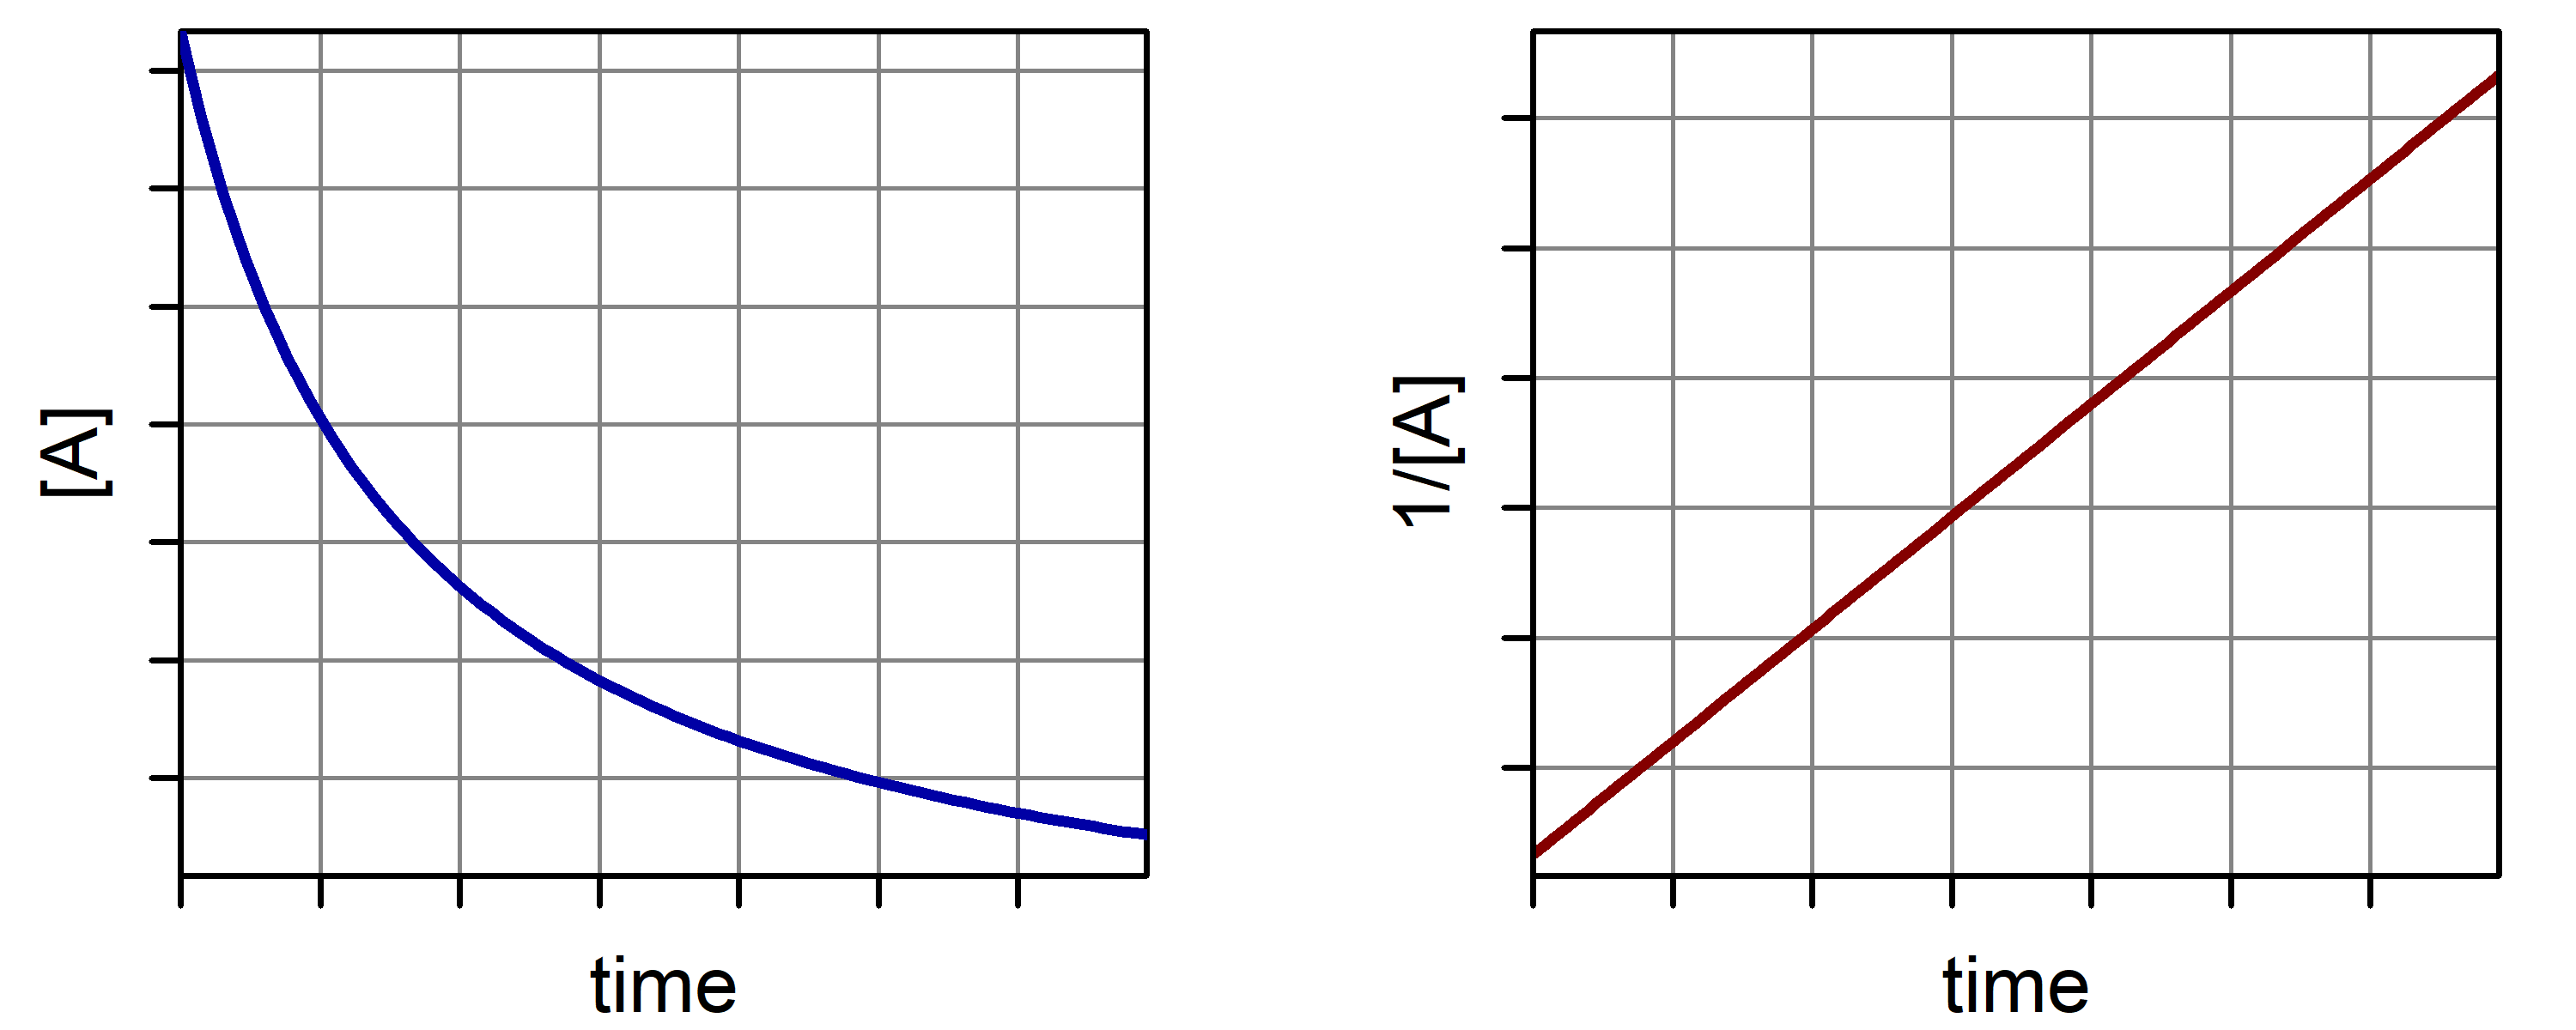 """A graph is shown with the label """"Time"""" on the x-axis and """"[A]"""" on the y-axis. It has a curved line A second graph is shown with the label """"Time"""" on the x-axis and """"1/[A]"""" on the y-axis. This graph has a positively sloped linear line with a non-zero y-intercept."""